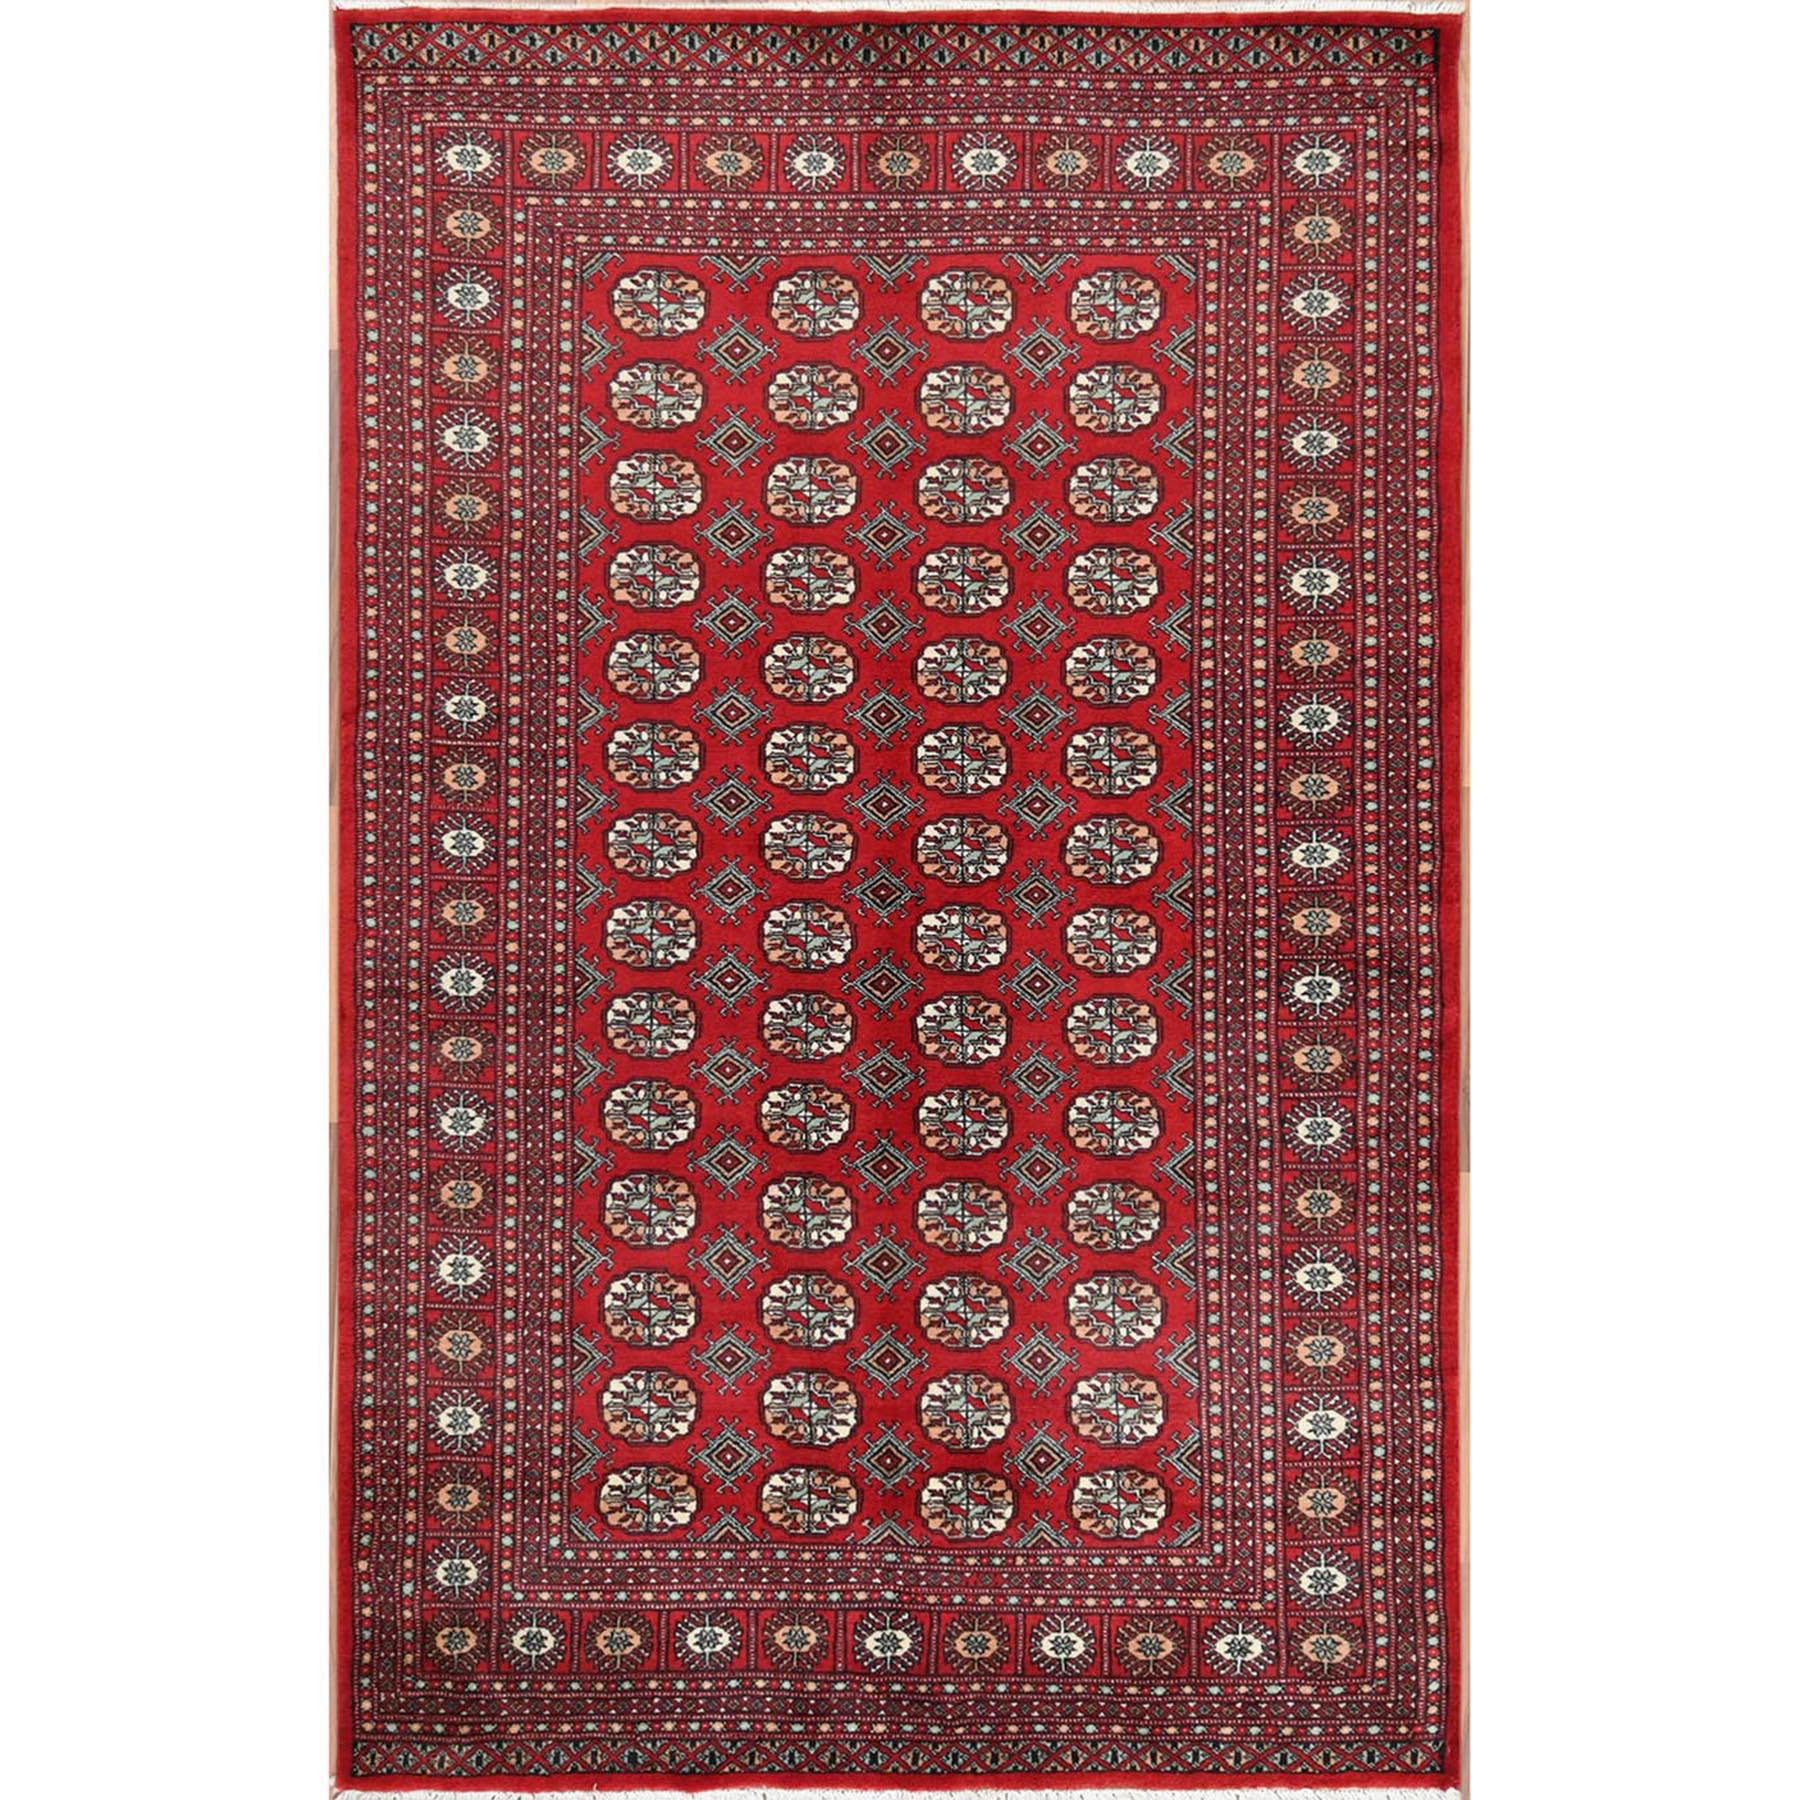 Nomadic And Village Collection Hand Knotted Red Rug No: 1115978